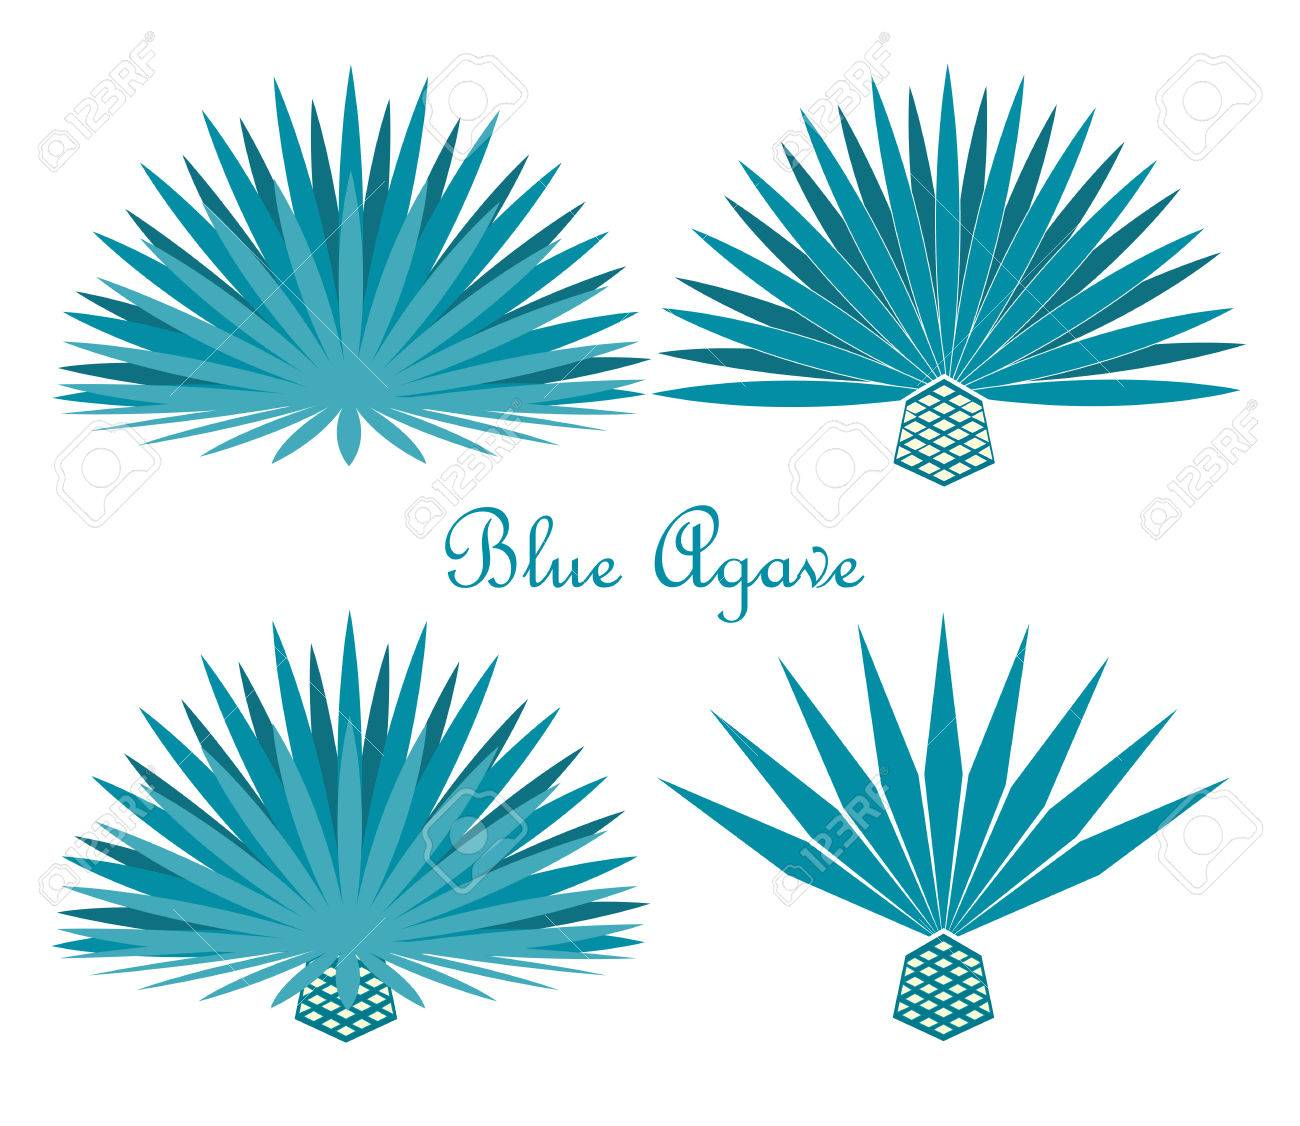 Blue Agave Or Tequila Agave Plant Royalty Free Cliparts Vectors